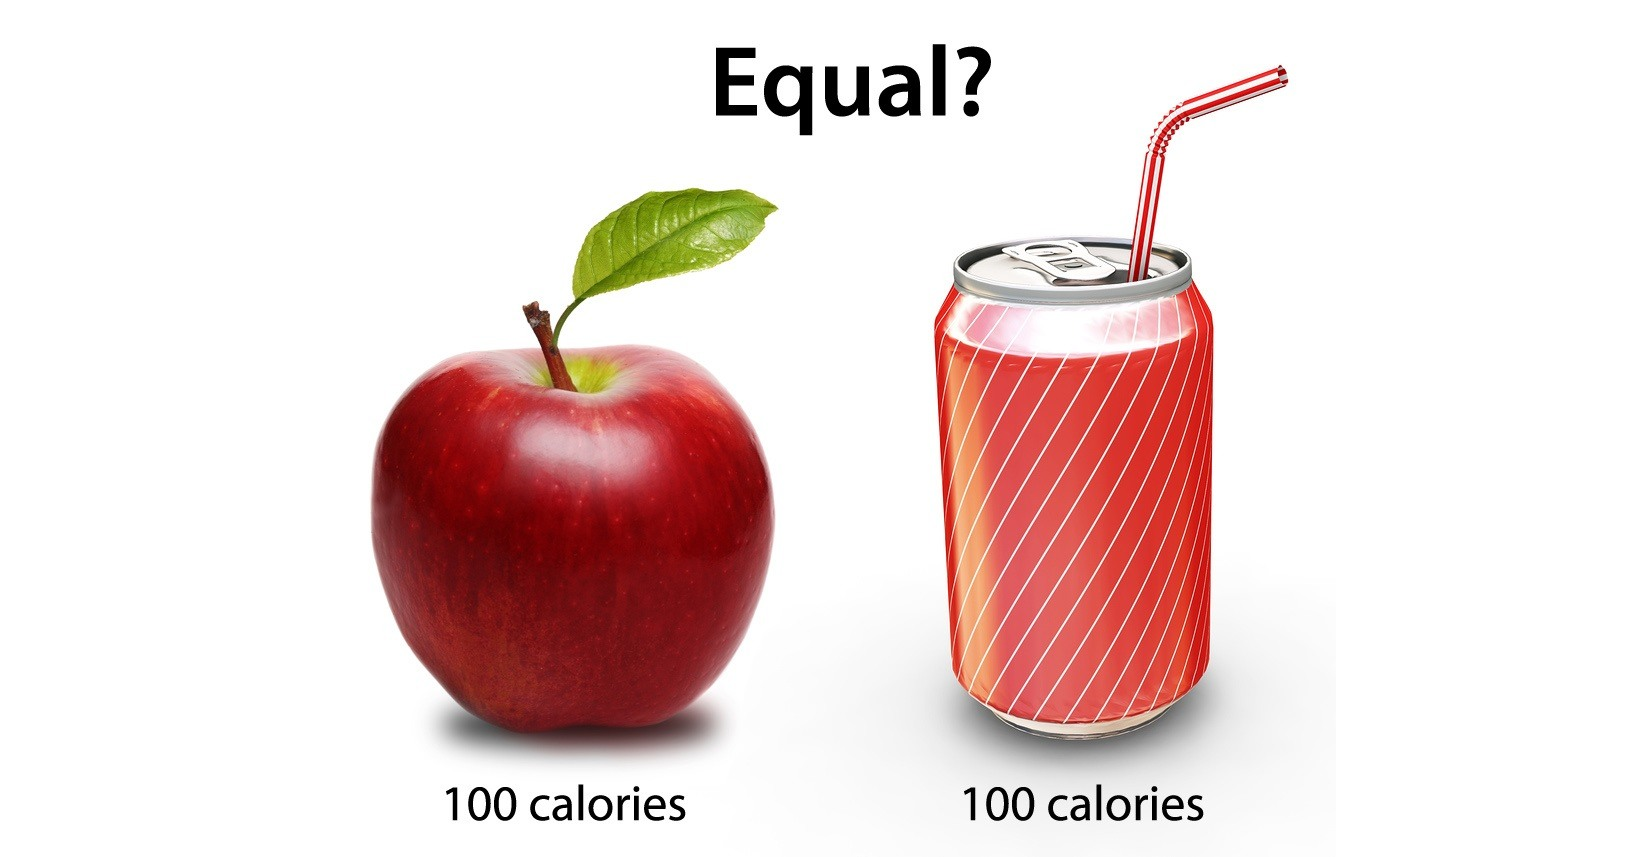 How The Calorie Theory Of Obesity And Disease Has Harmed